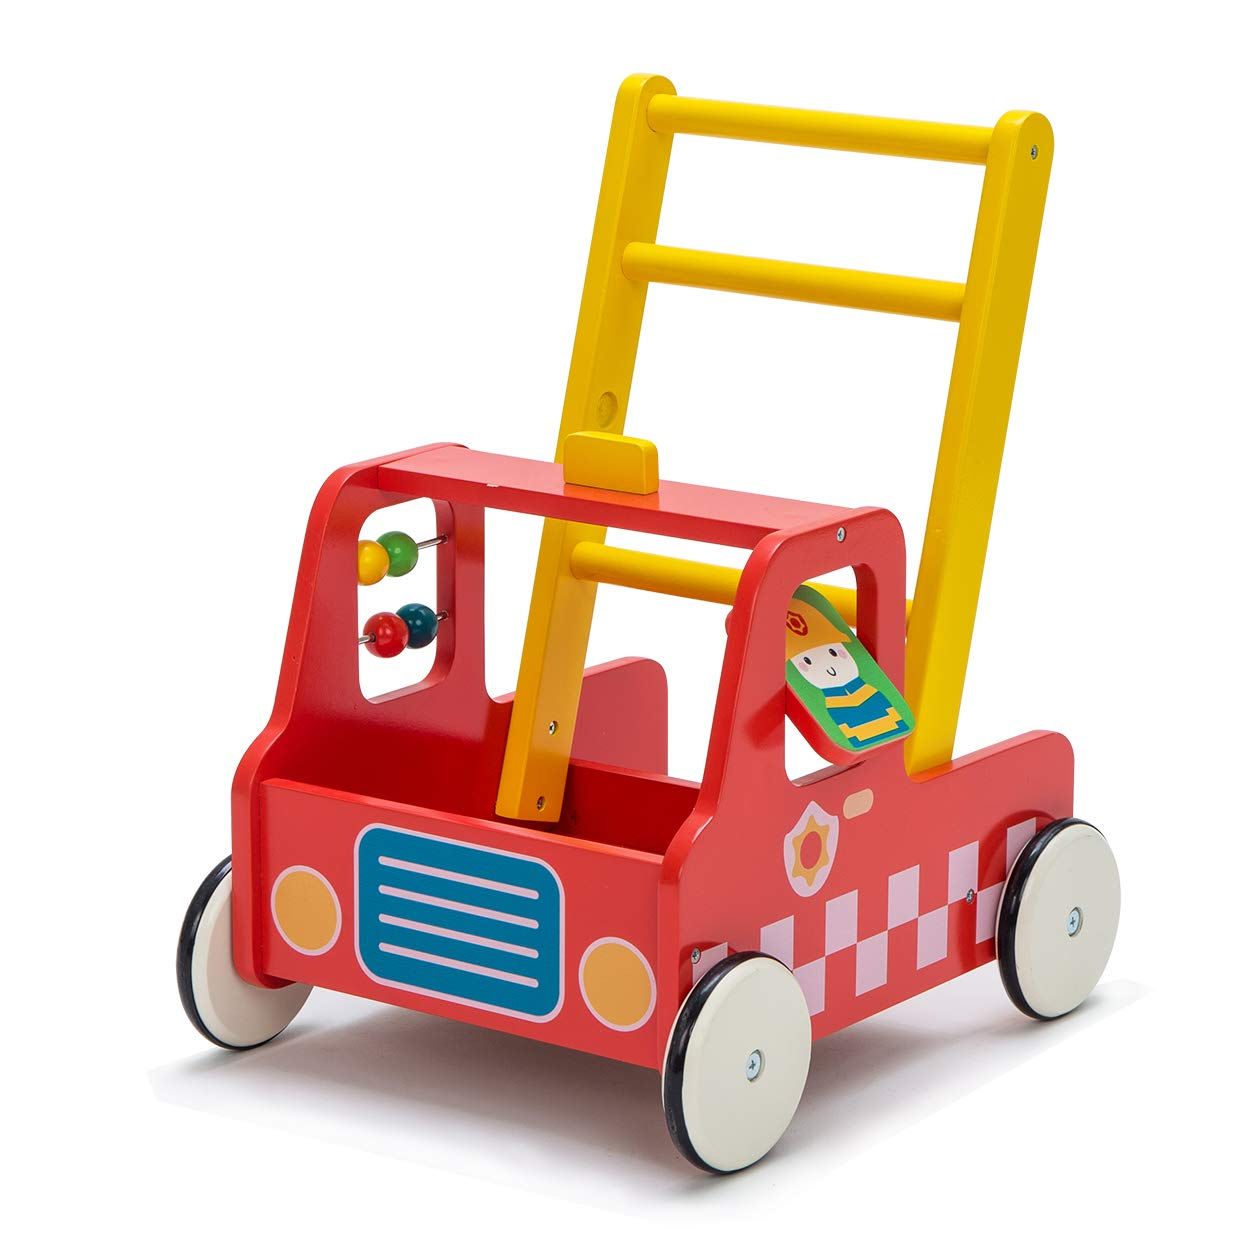 Hessie Wooden Push Toy, Baby Walker with Wheel, FireEngine Activity Toy, Toddler Learning Walking Toys for 1 2 3 Year Old